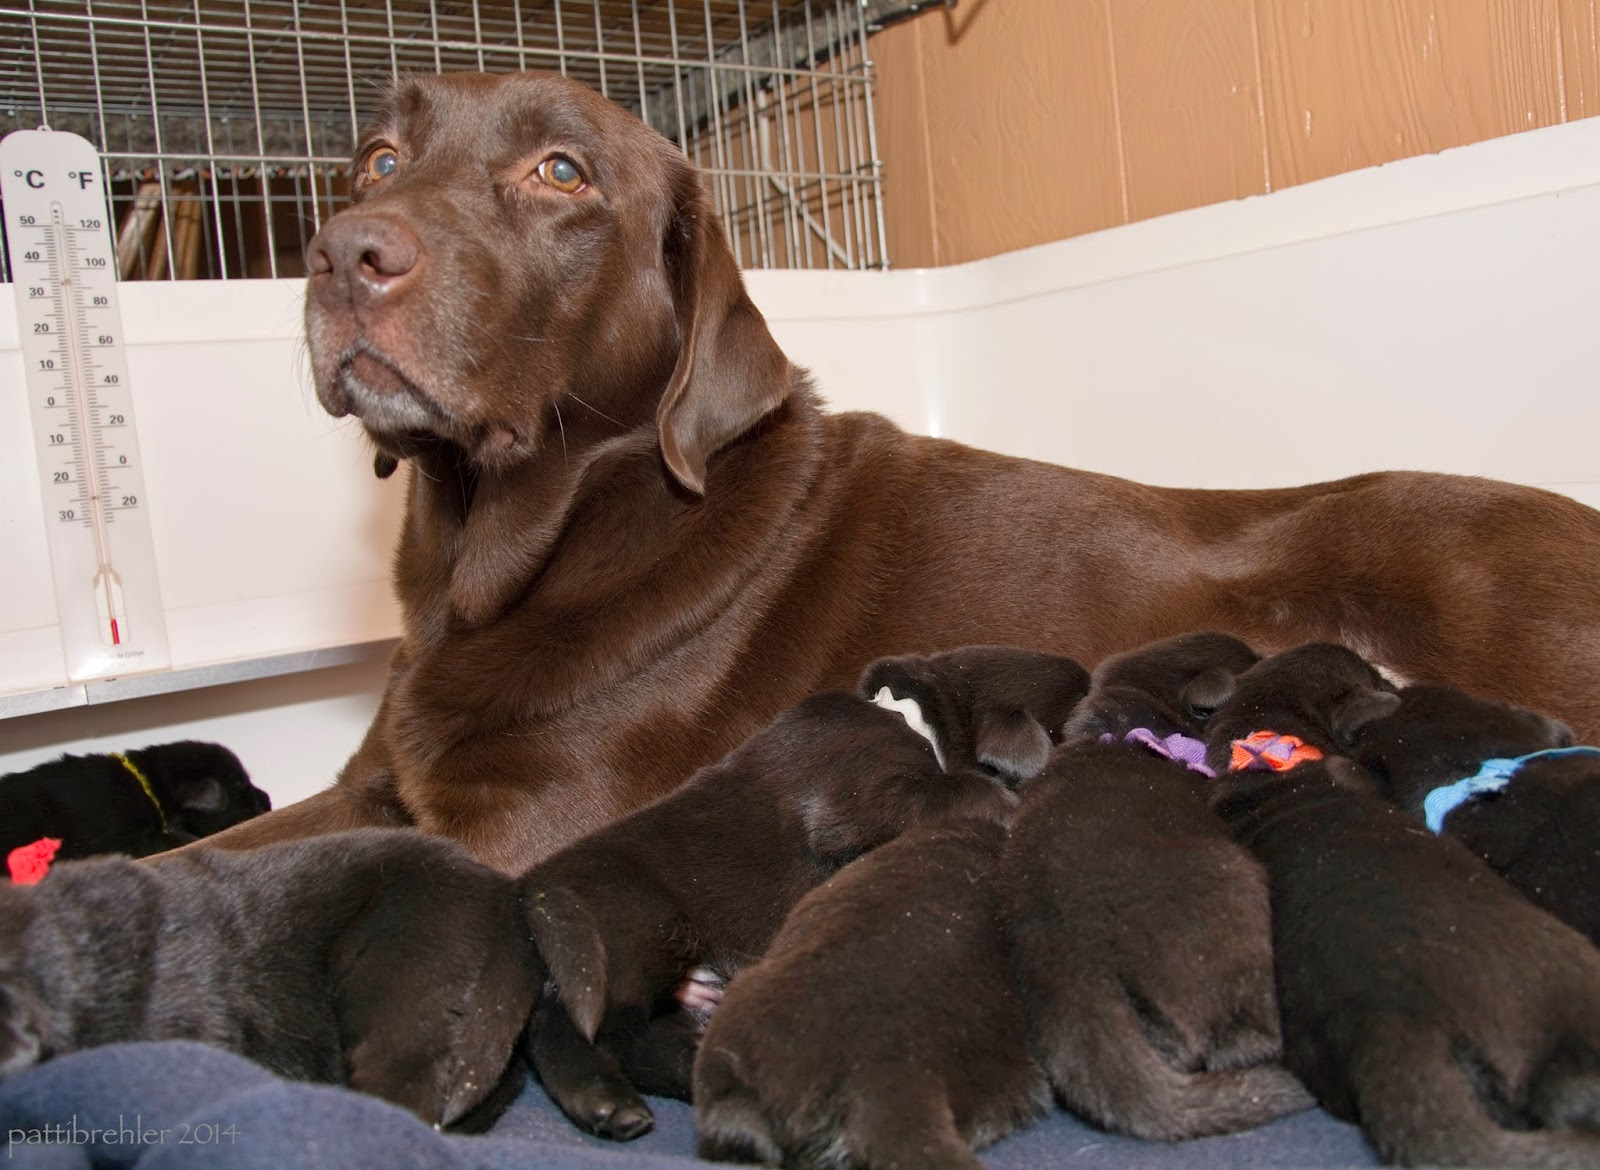 "A chocolate lab ""mom"" is lying down with five black puppies trying to nurse on her. Two other black puppies are nearby. The dog and pups are in a white whelping box, there is a thermometer on the left side. The chocolate lab is looking at the camera with a tired expression! All of the puppies have colorful ribbons tied around their necks for identification."